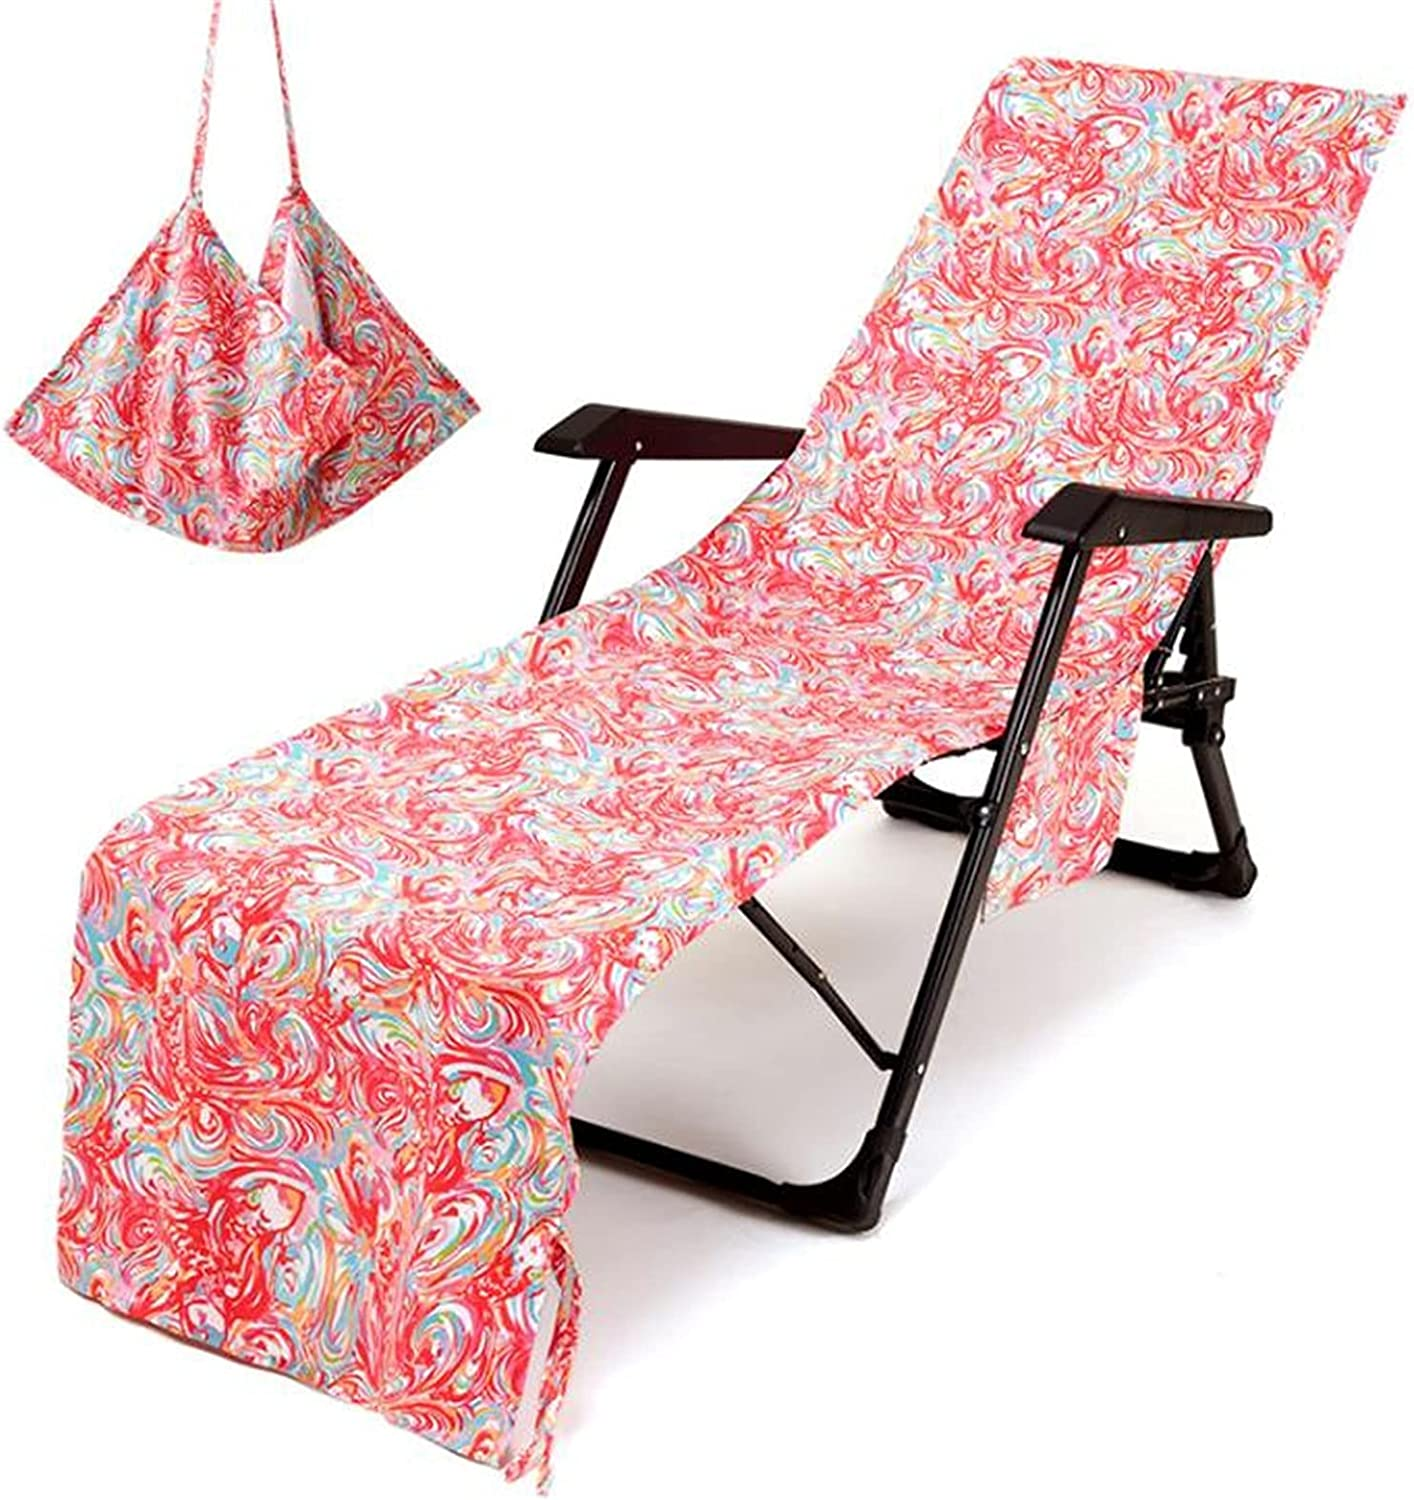 Special price for a limited time Beach Chair Cover Bargain Soft Microfiber Lounge Pat Chaise Towel